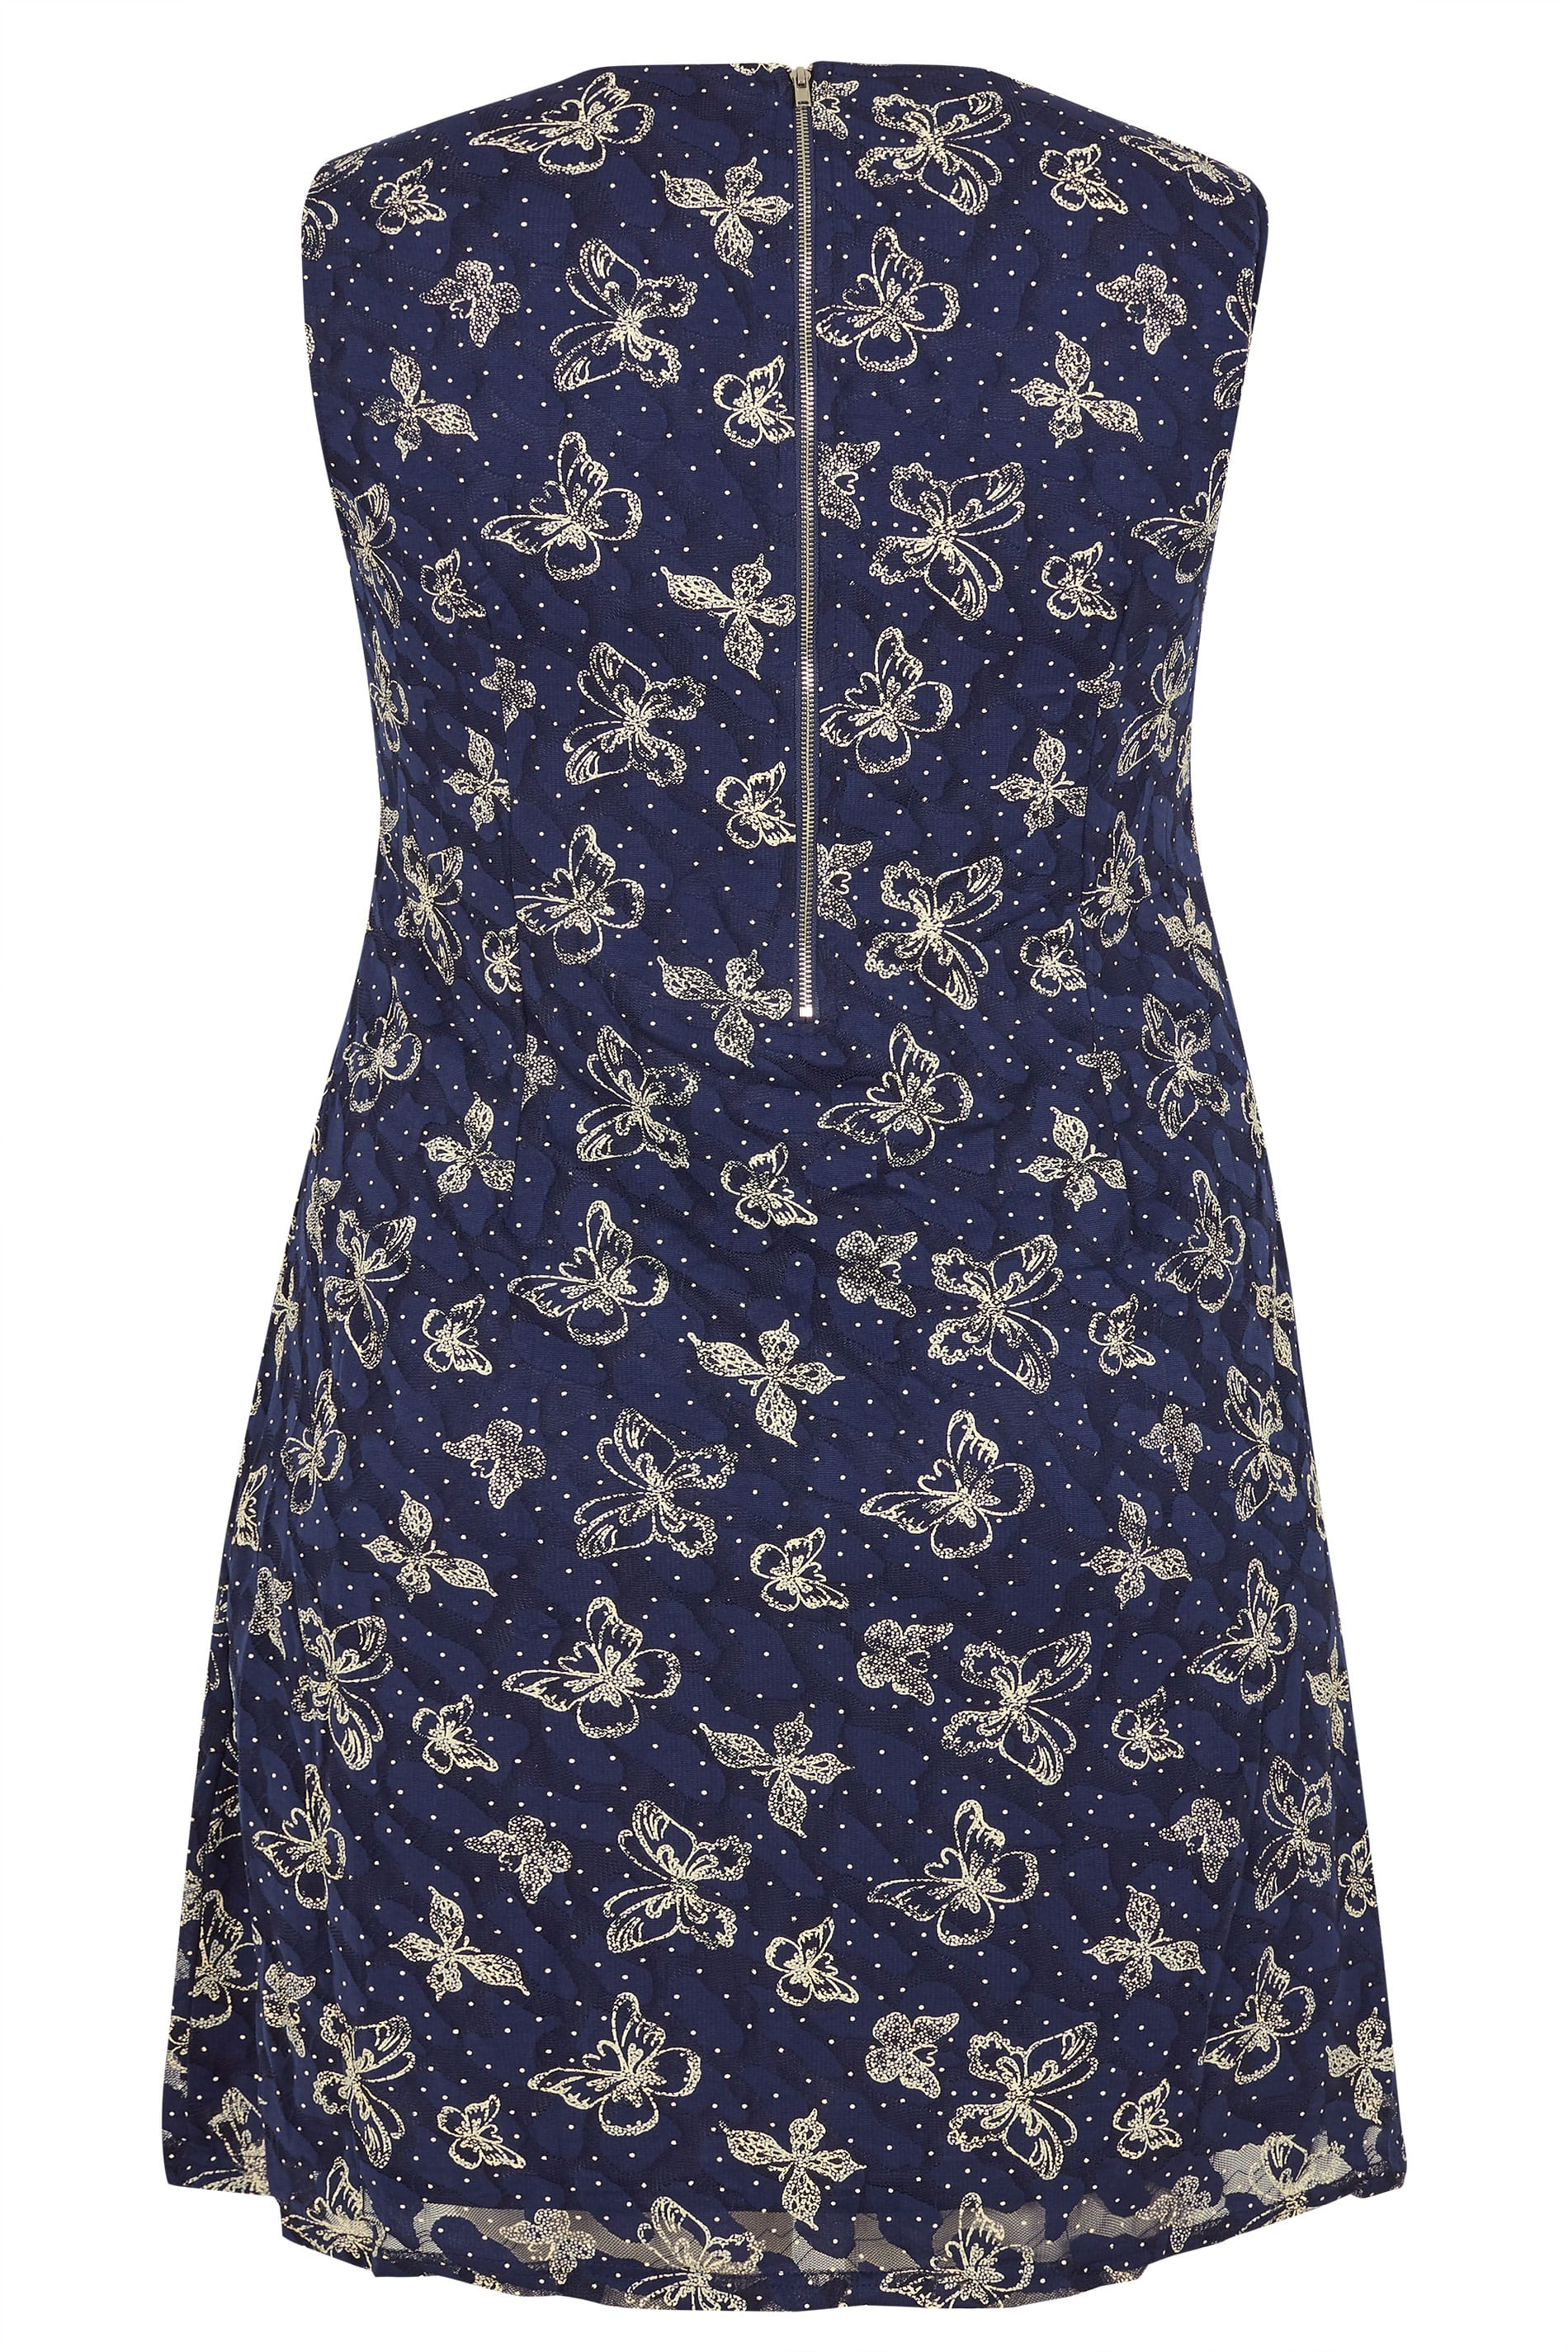 cacead1f55 IZABEL CURVE Navy Lace Butterfly Dress